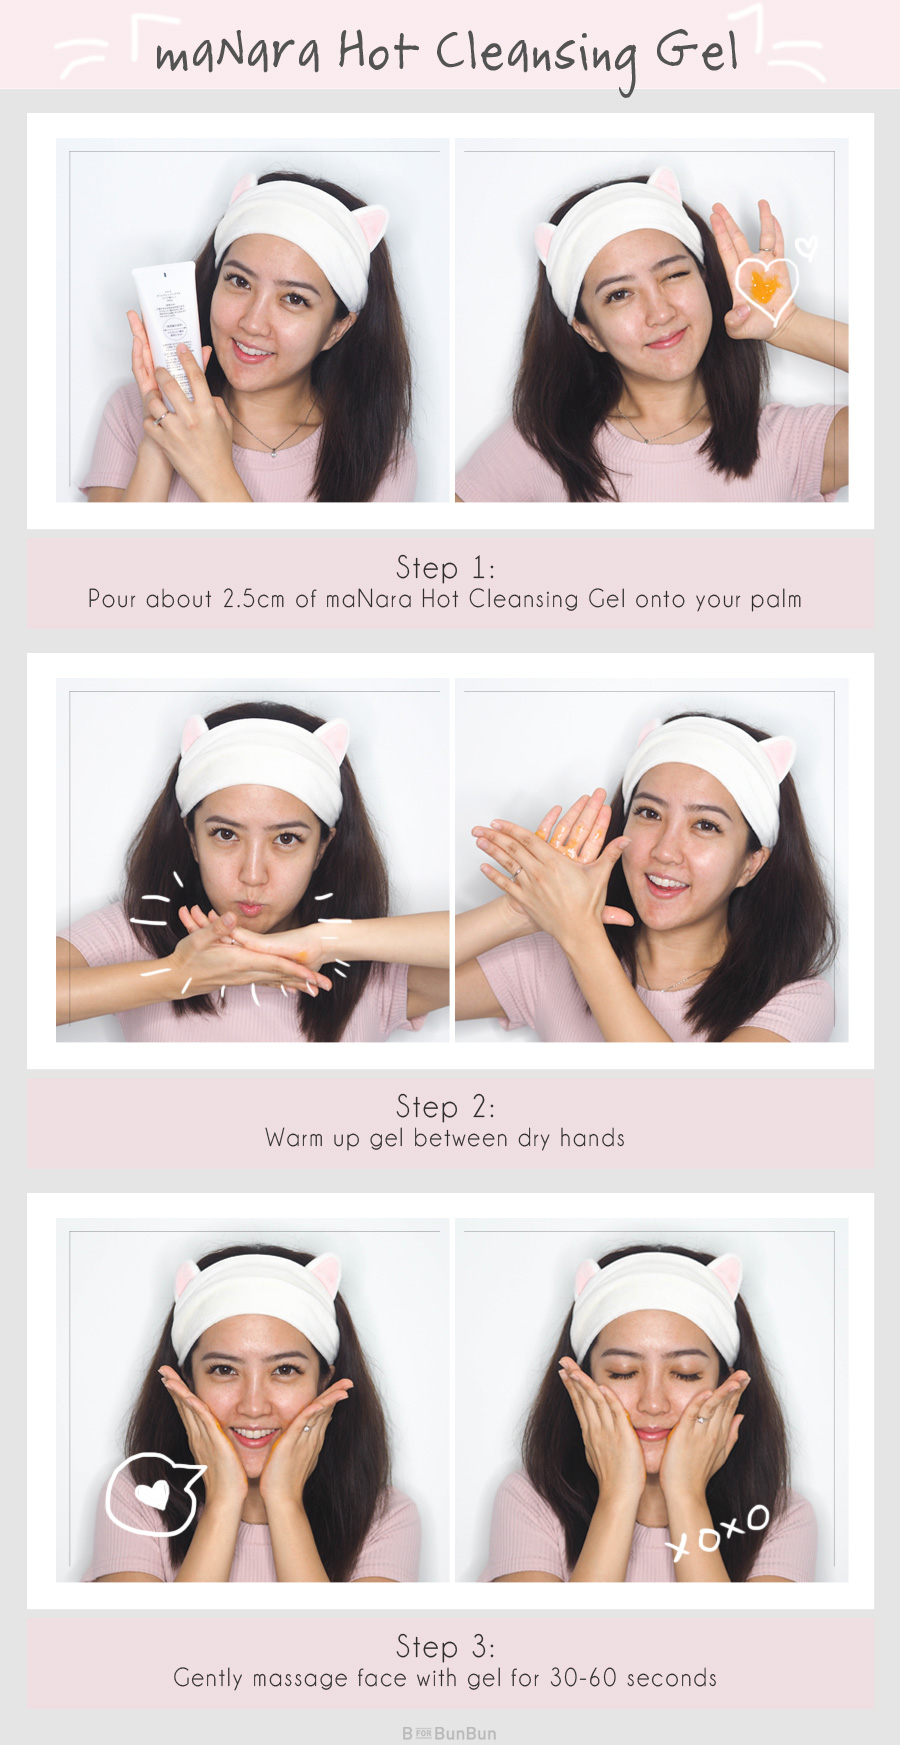 japanese-manara-hot-cleansing-gel-tutorial_1.2